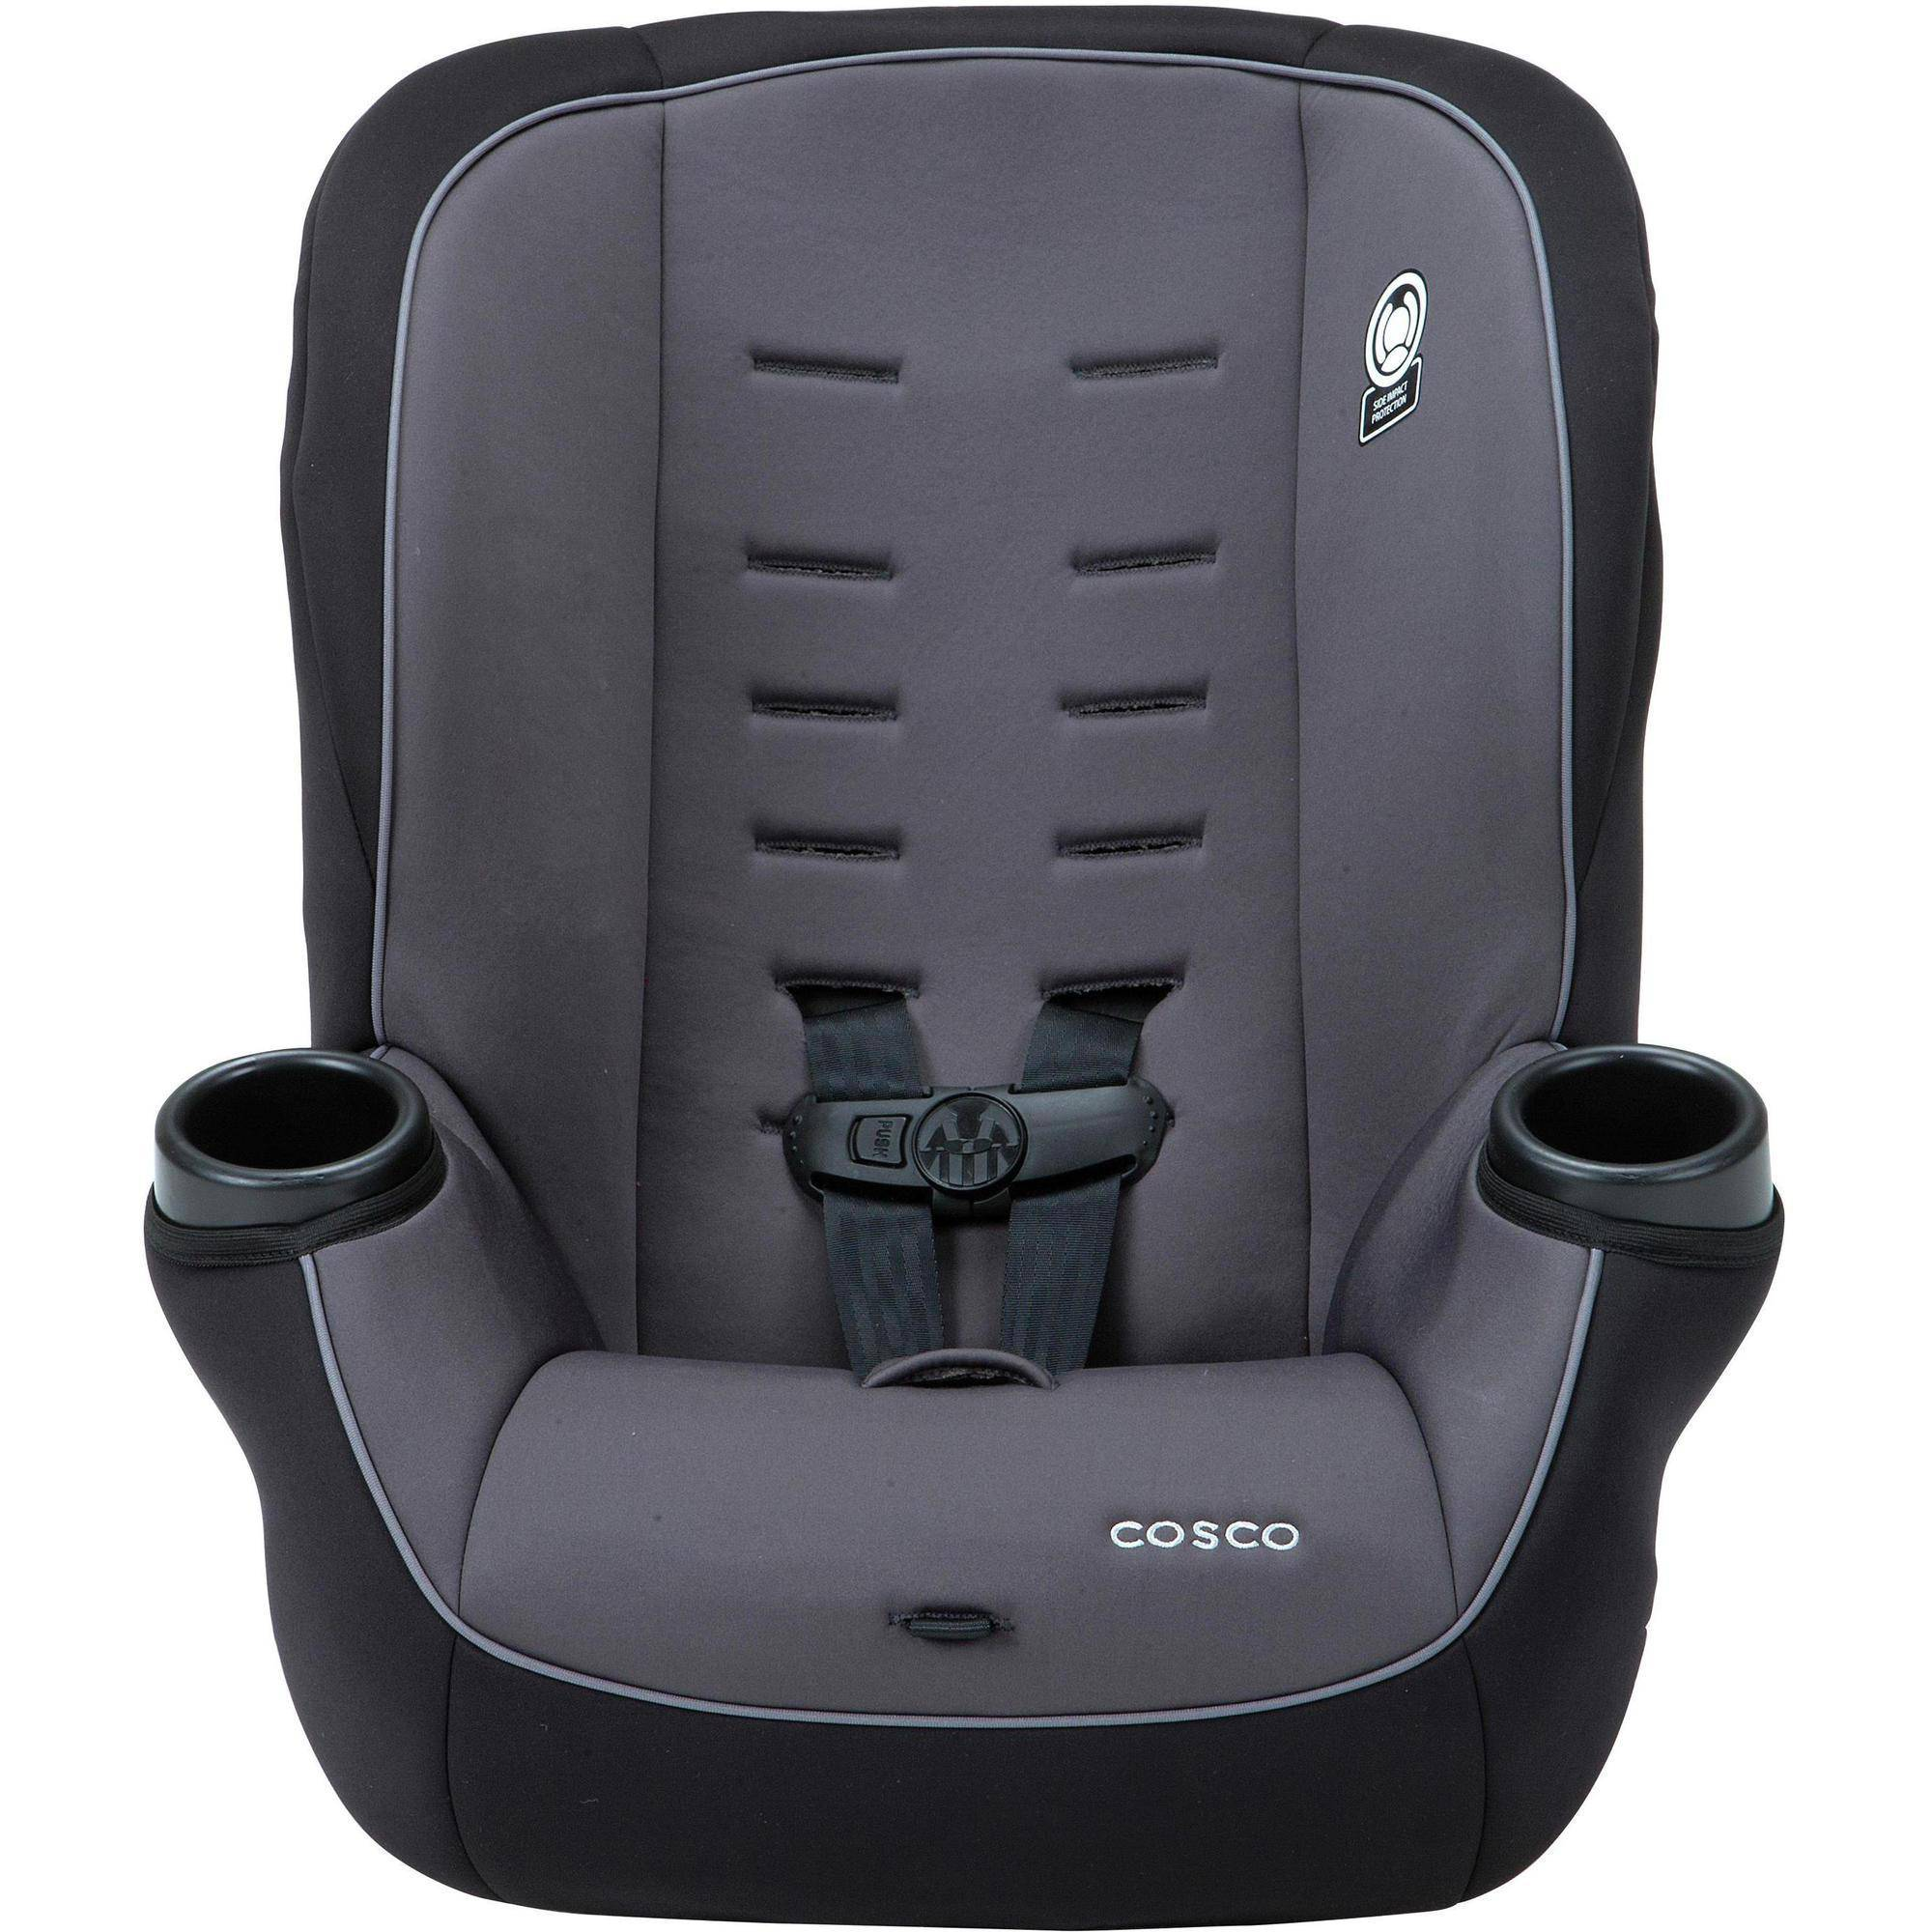 Cosco Apt 50 Convertible Car Seat Walmart.com